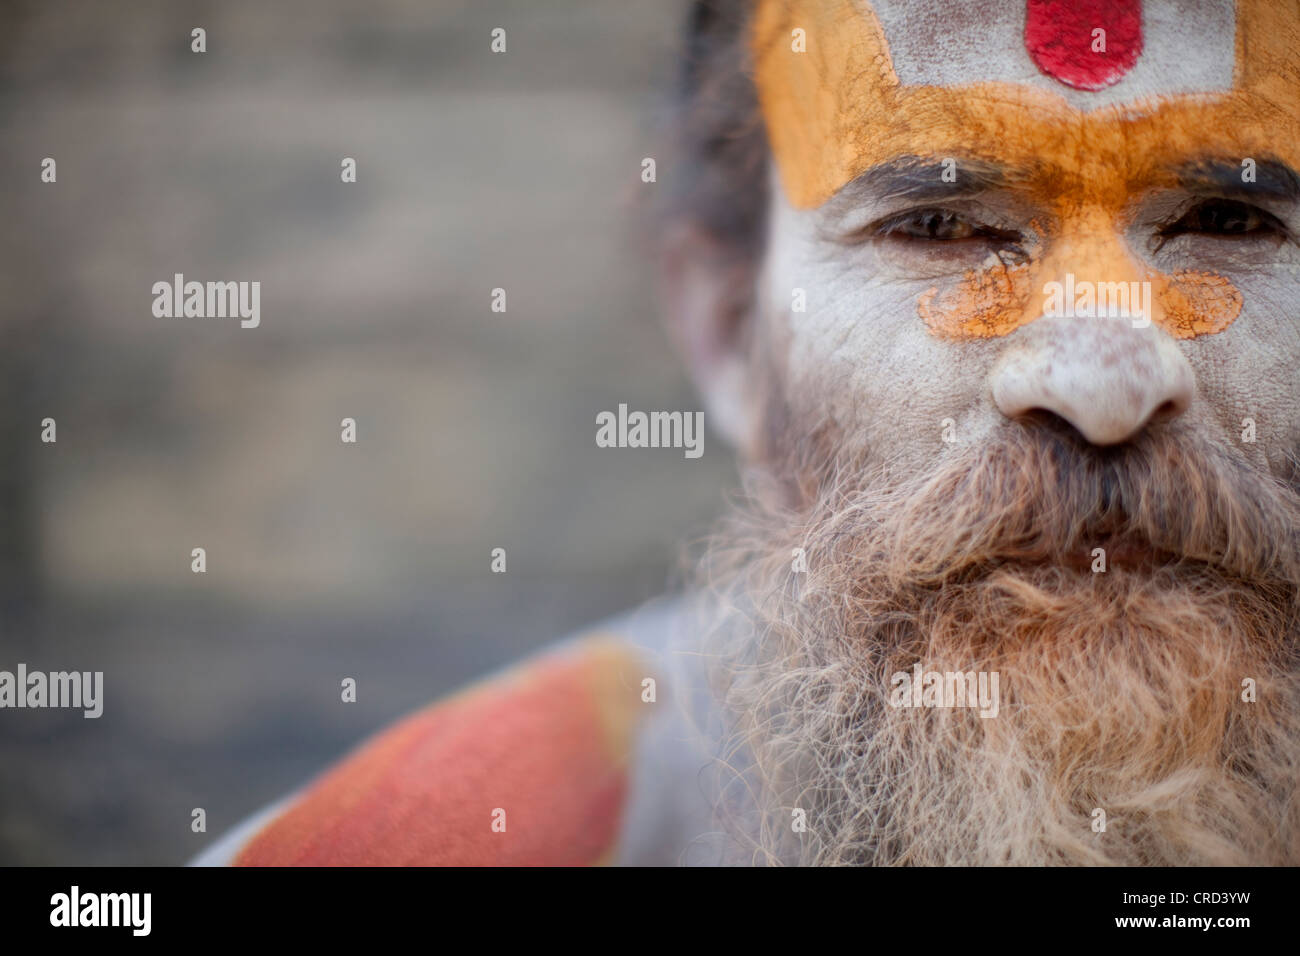 A Hindu priest, a sadhu and esthetic, with body paint poses in a Kathmandu, Nepal temple. - Stock Image